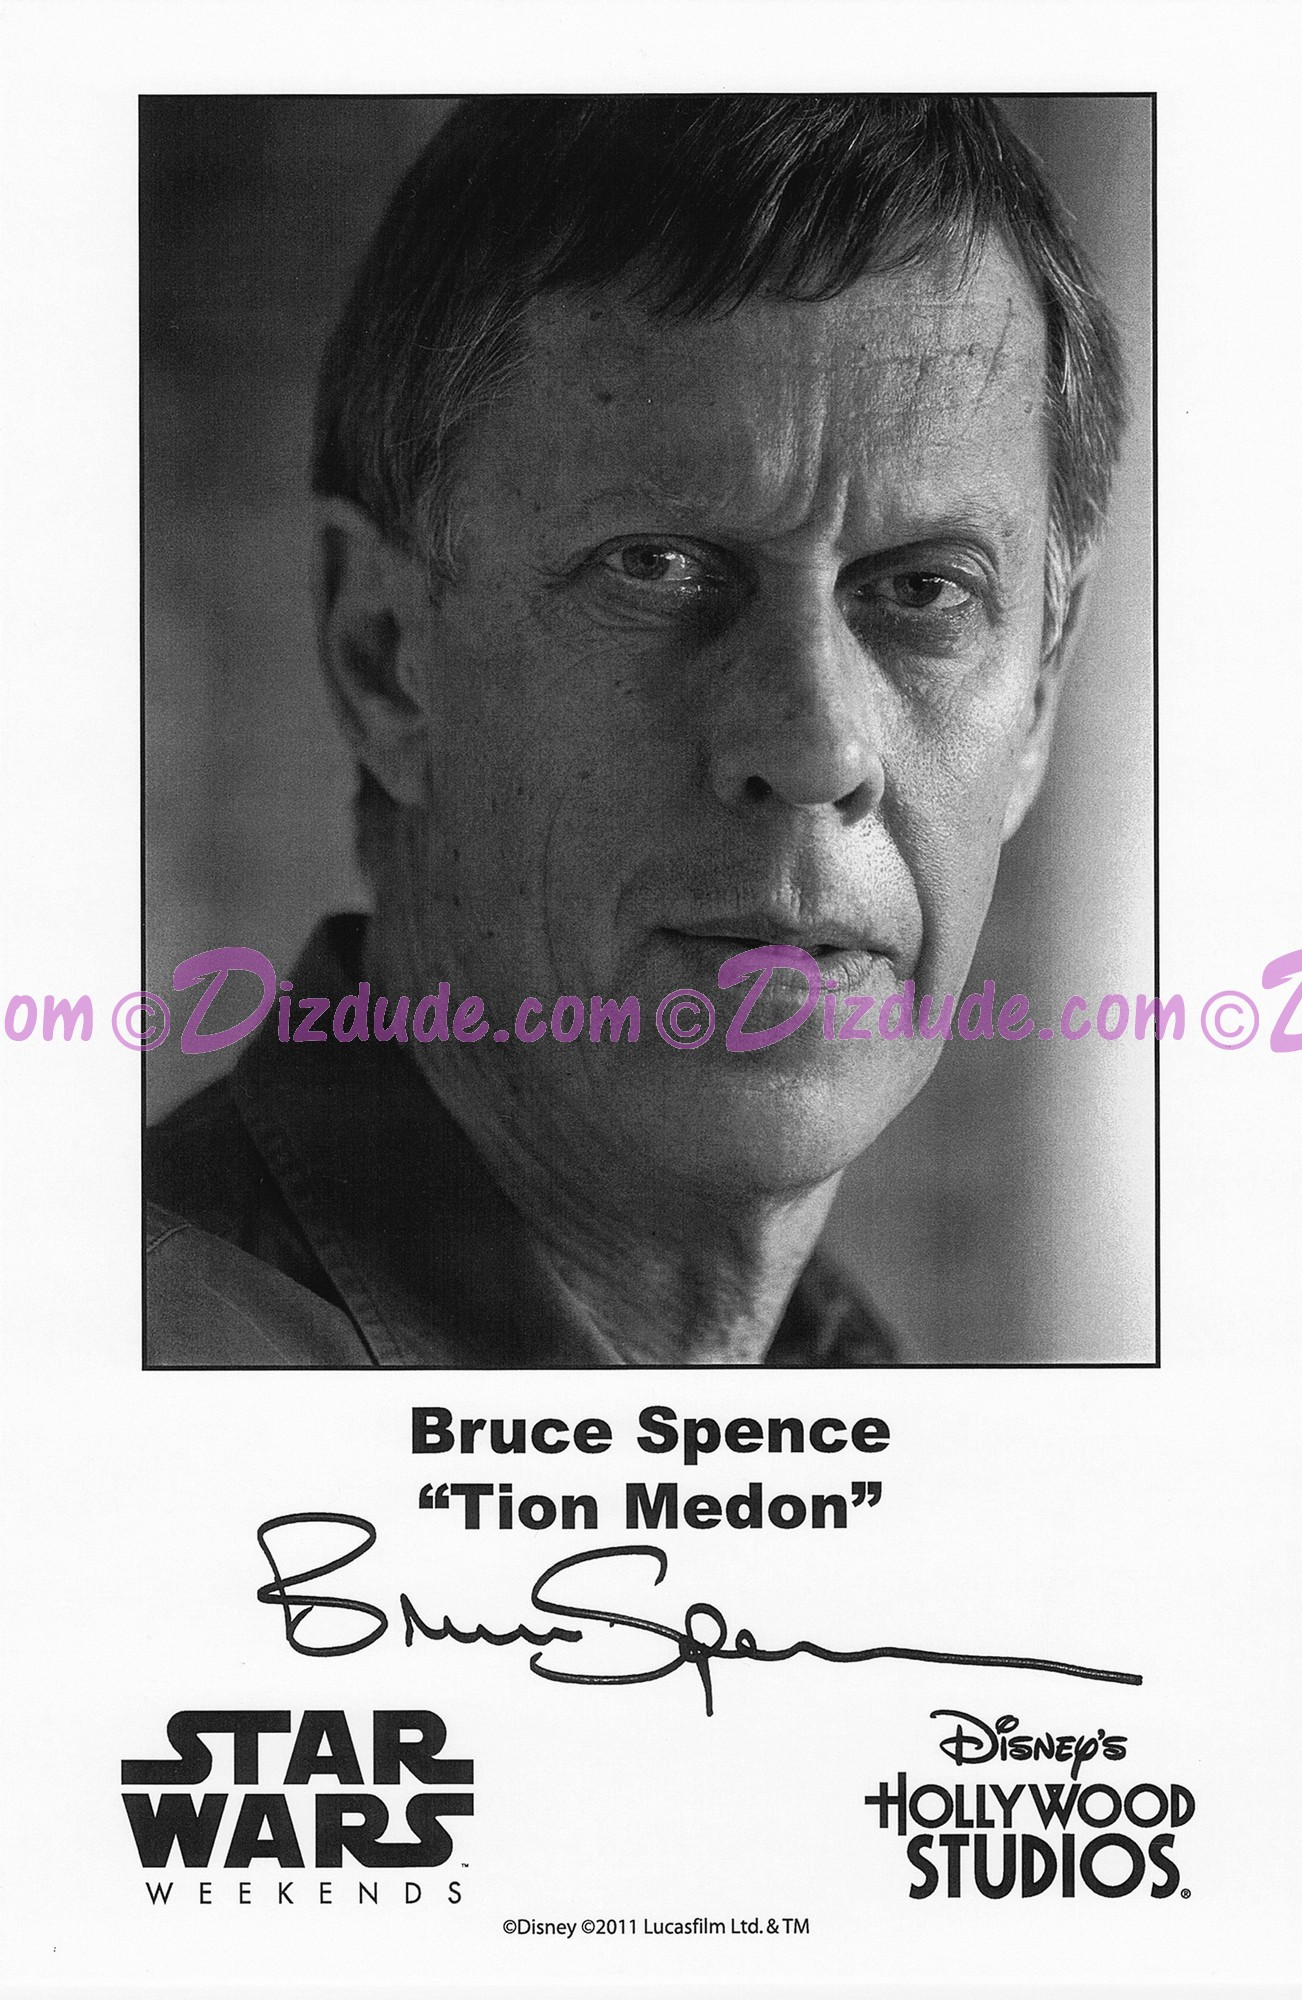 Bruce Spence who played Tion Medon Presigned Official Star Wars Weekends 2011 Celebrity Collector Photo © Dizdude.com